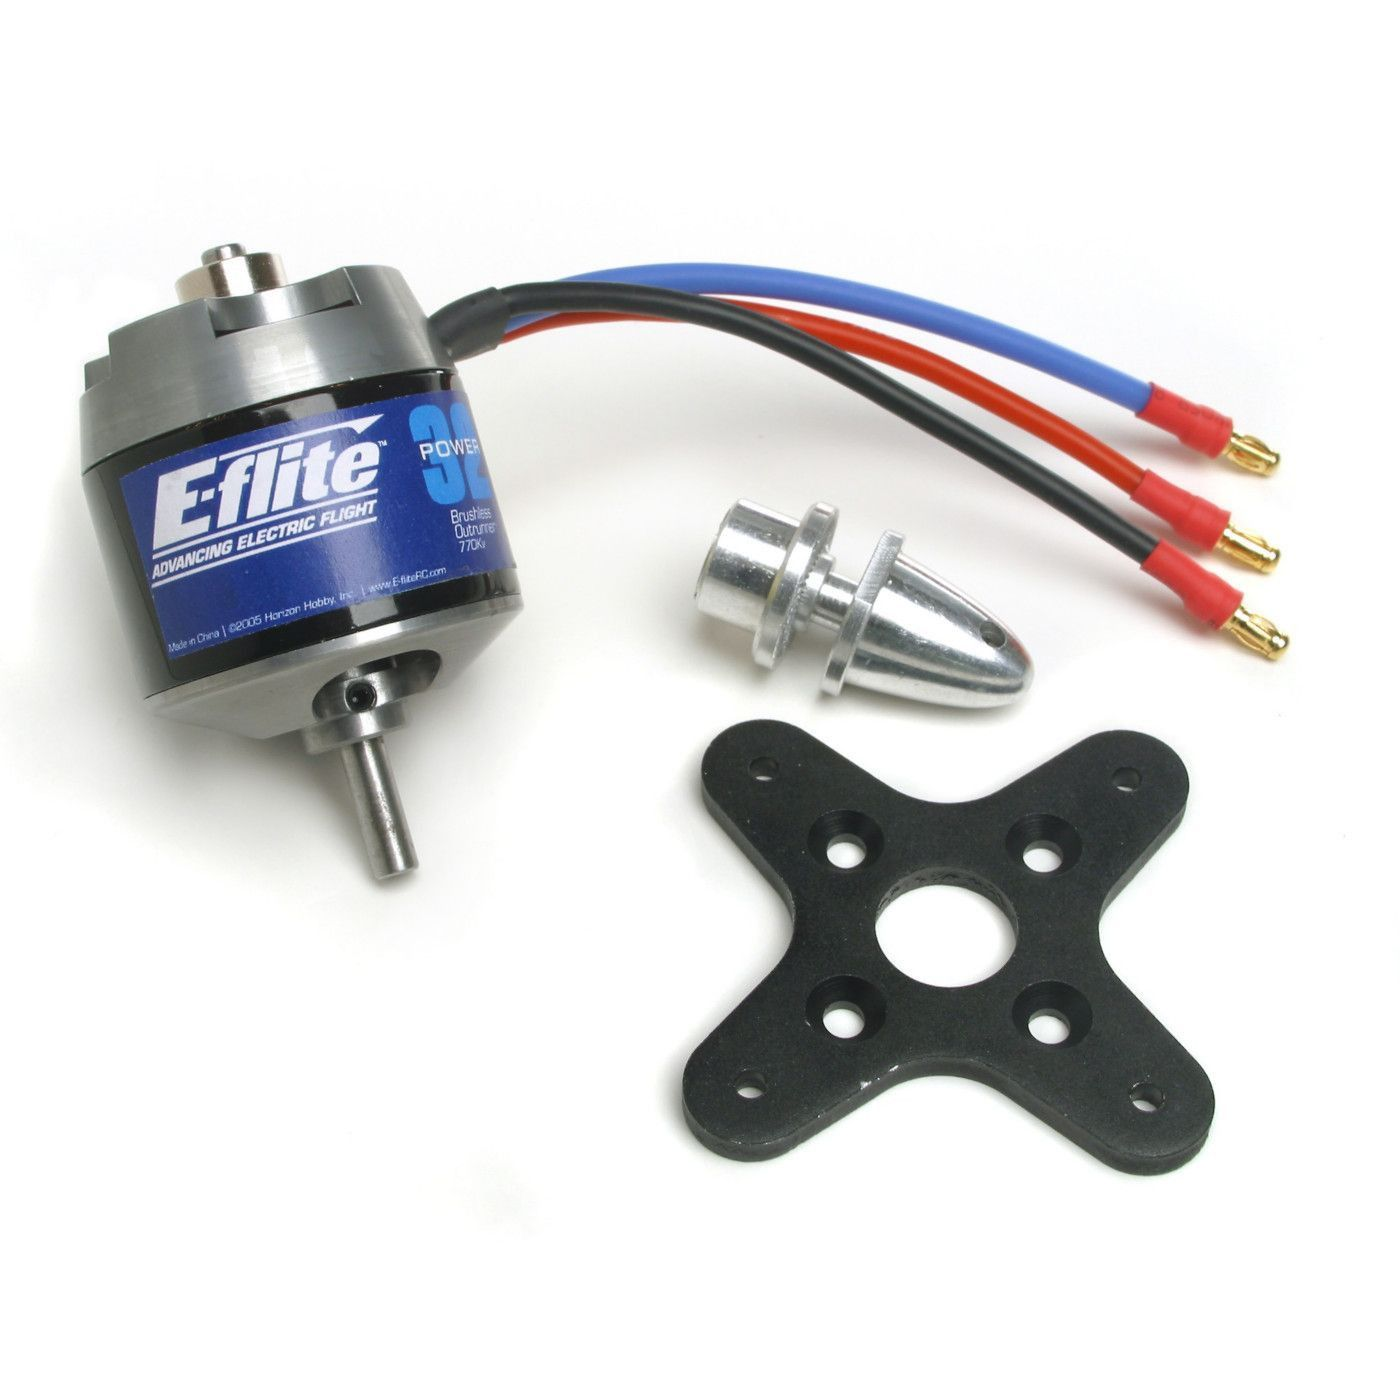 Power 32 Brushless Outrunner Motor, 770Kv